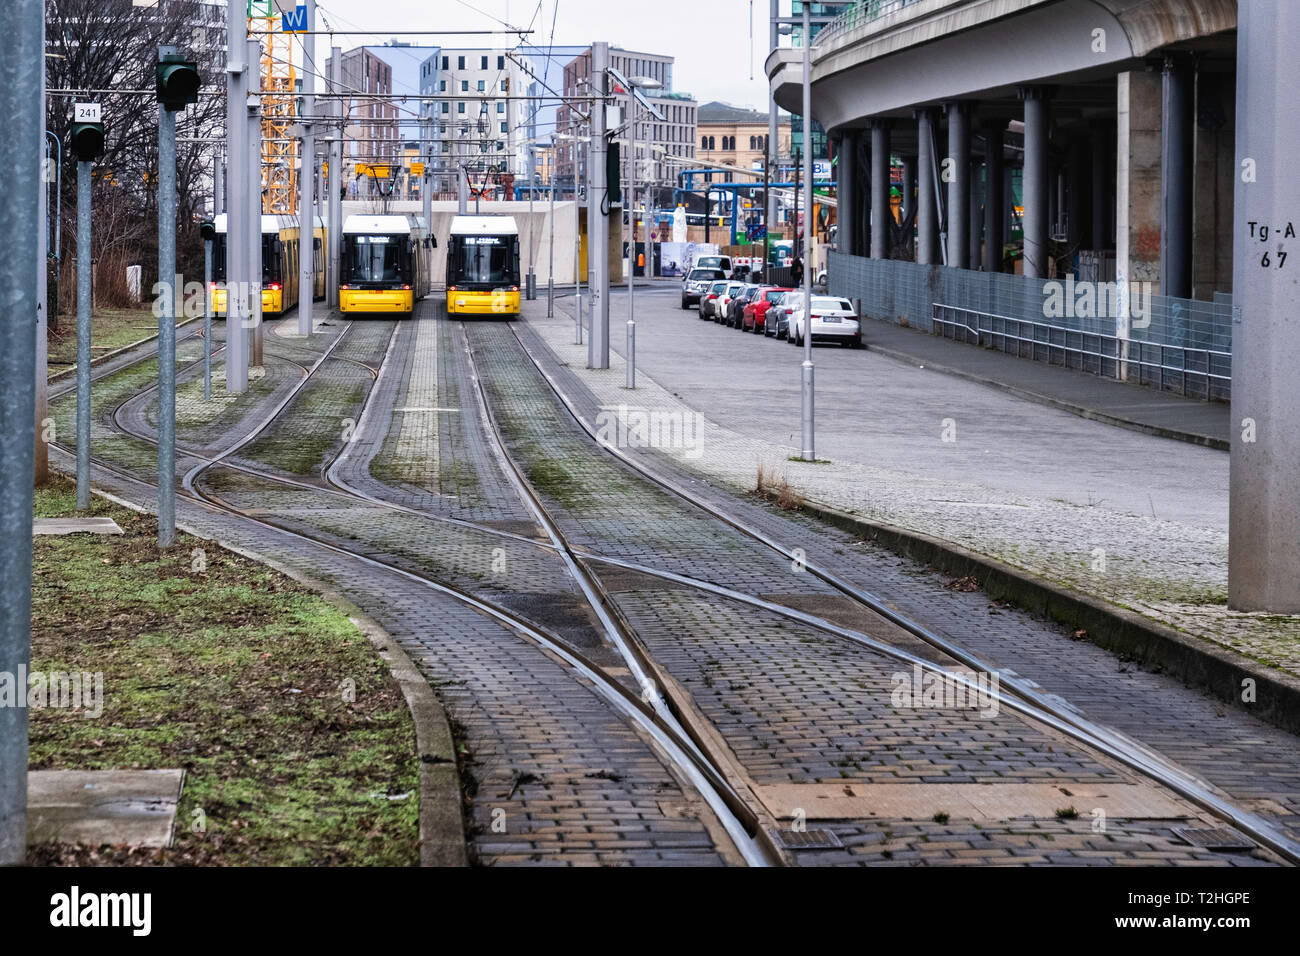 Berlin,Moabit, Tram terminus in Lüneburger Str. End of the line for M5 M8 & M10 trams Stock Photo